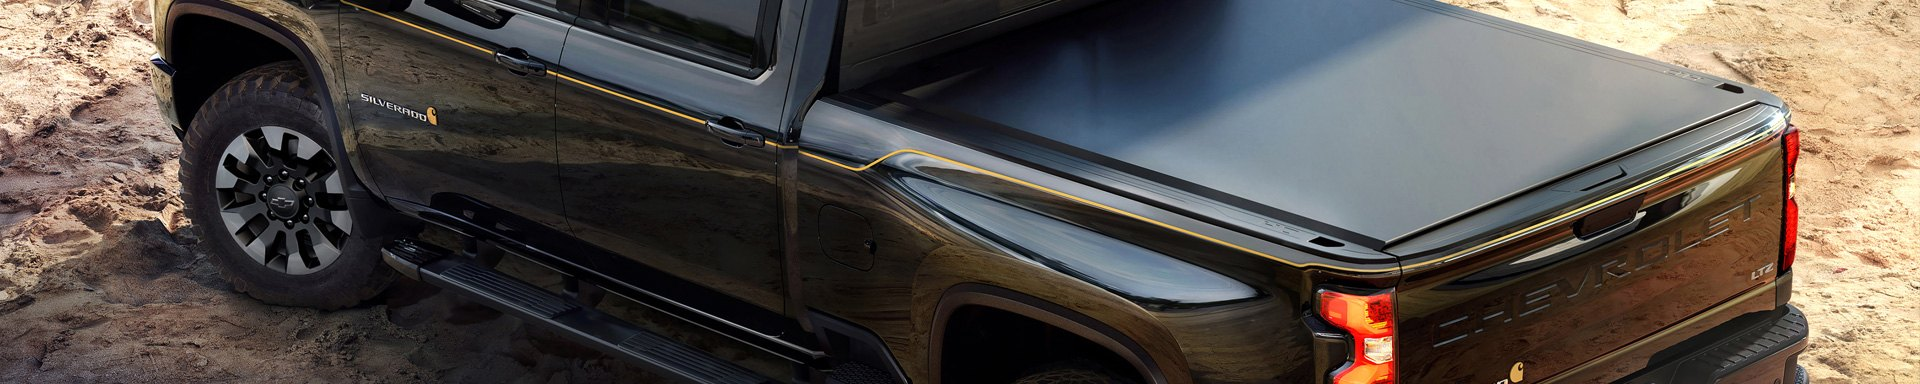 Pickup Truck Cab And Bed Sizes Are Important When Selecting Accessories